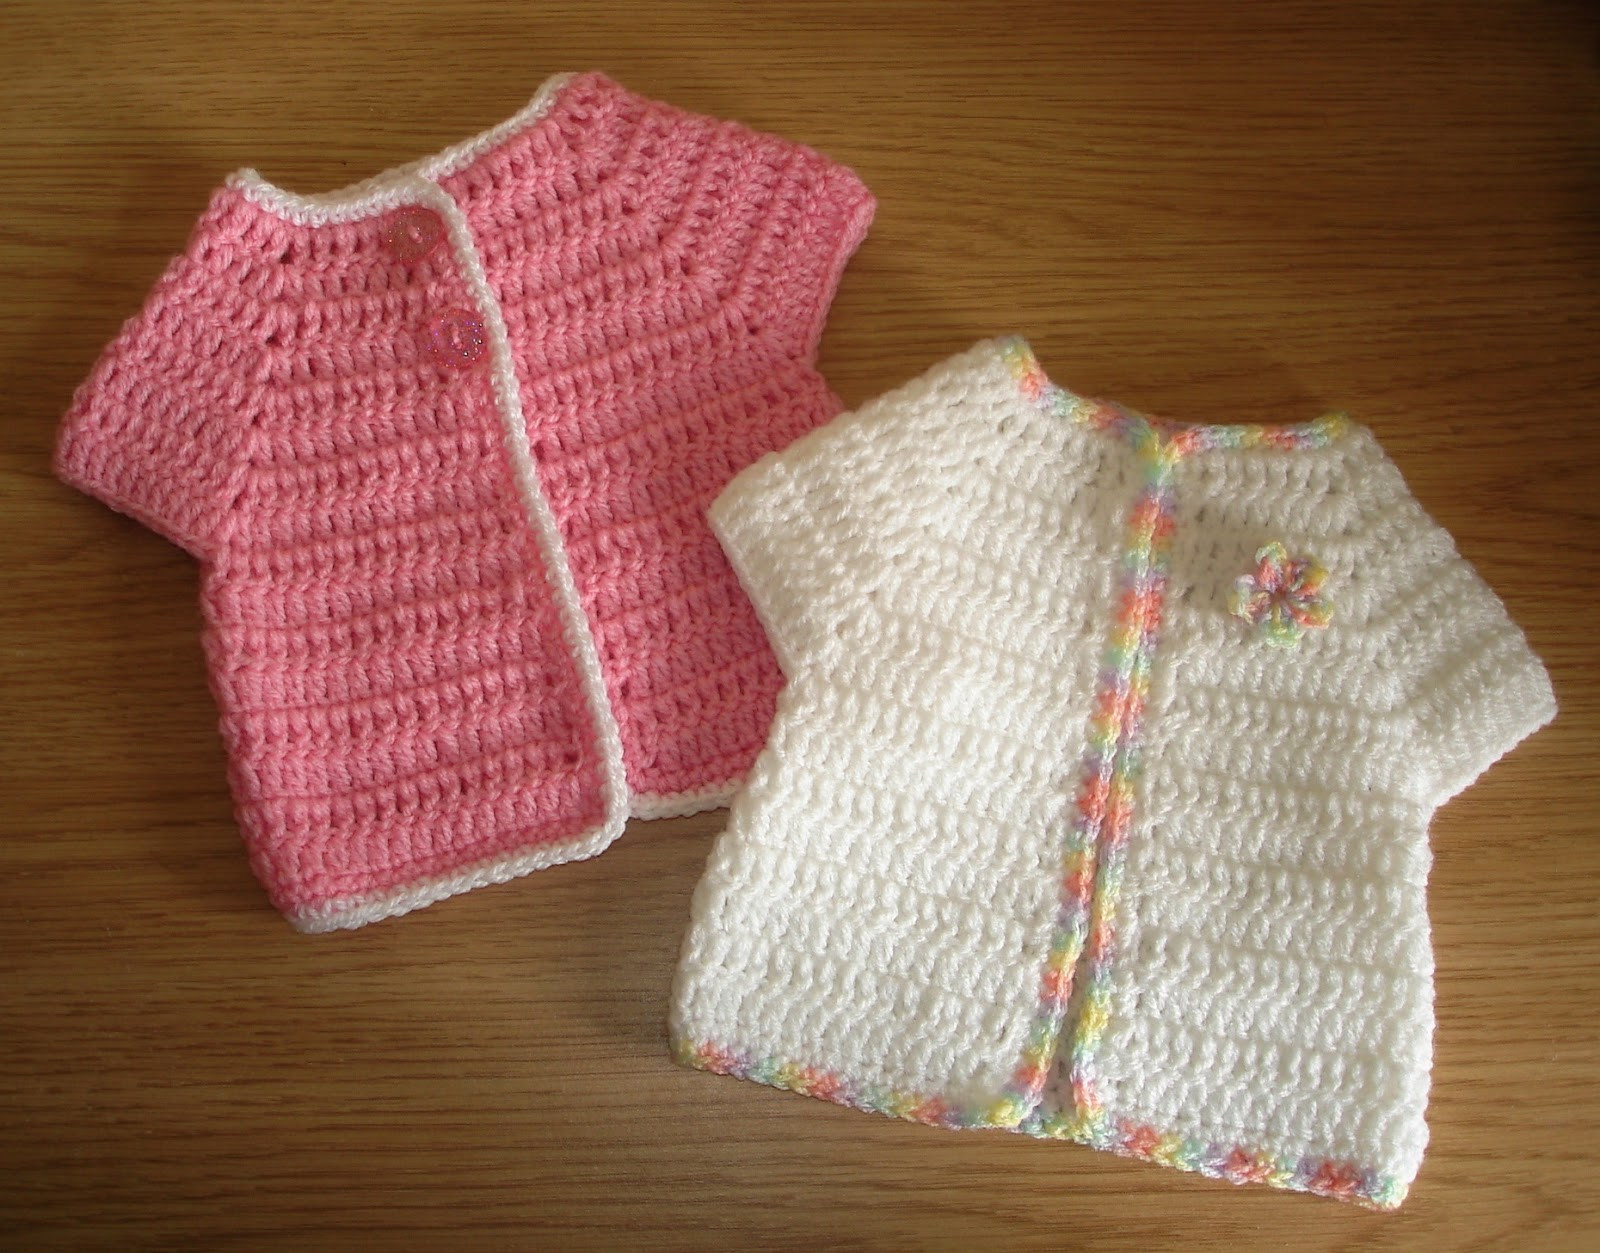 Crochet Baby Clothing Fresh Marianna S Lazy Daisy Days Cute Crochet Baby Cardi Of Amazing 44 Ideas Crochet Baby Clothing